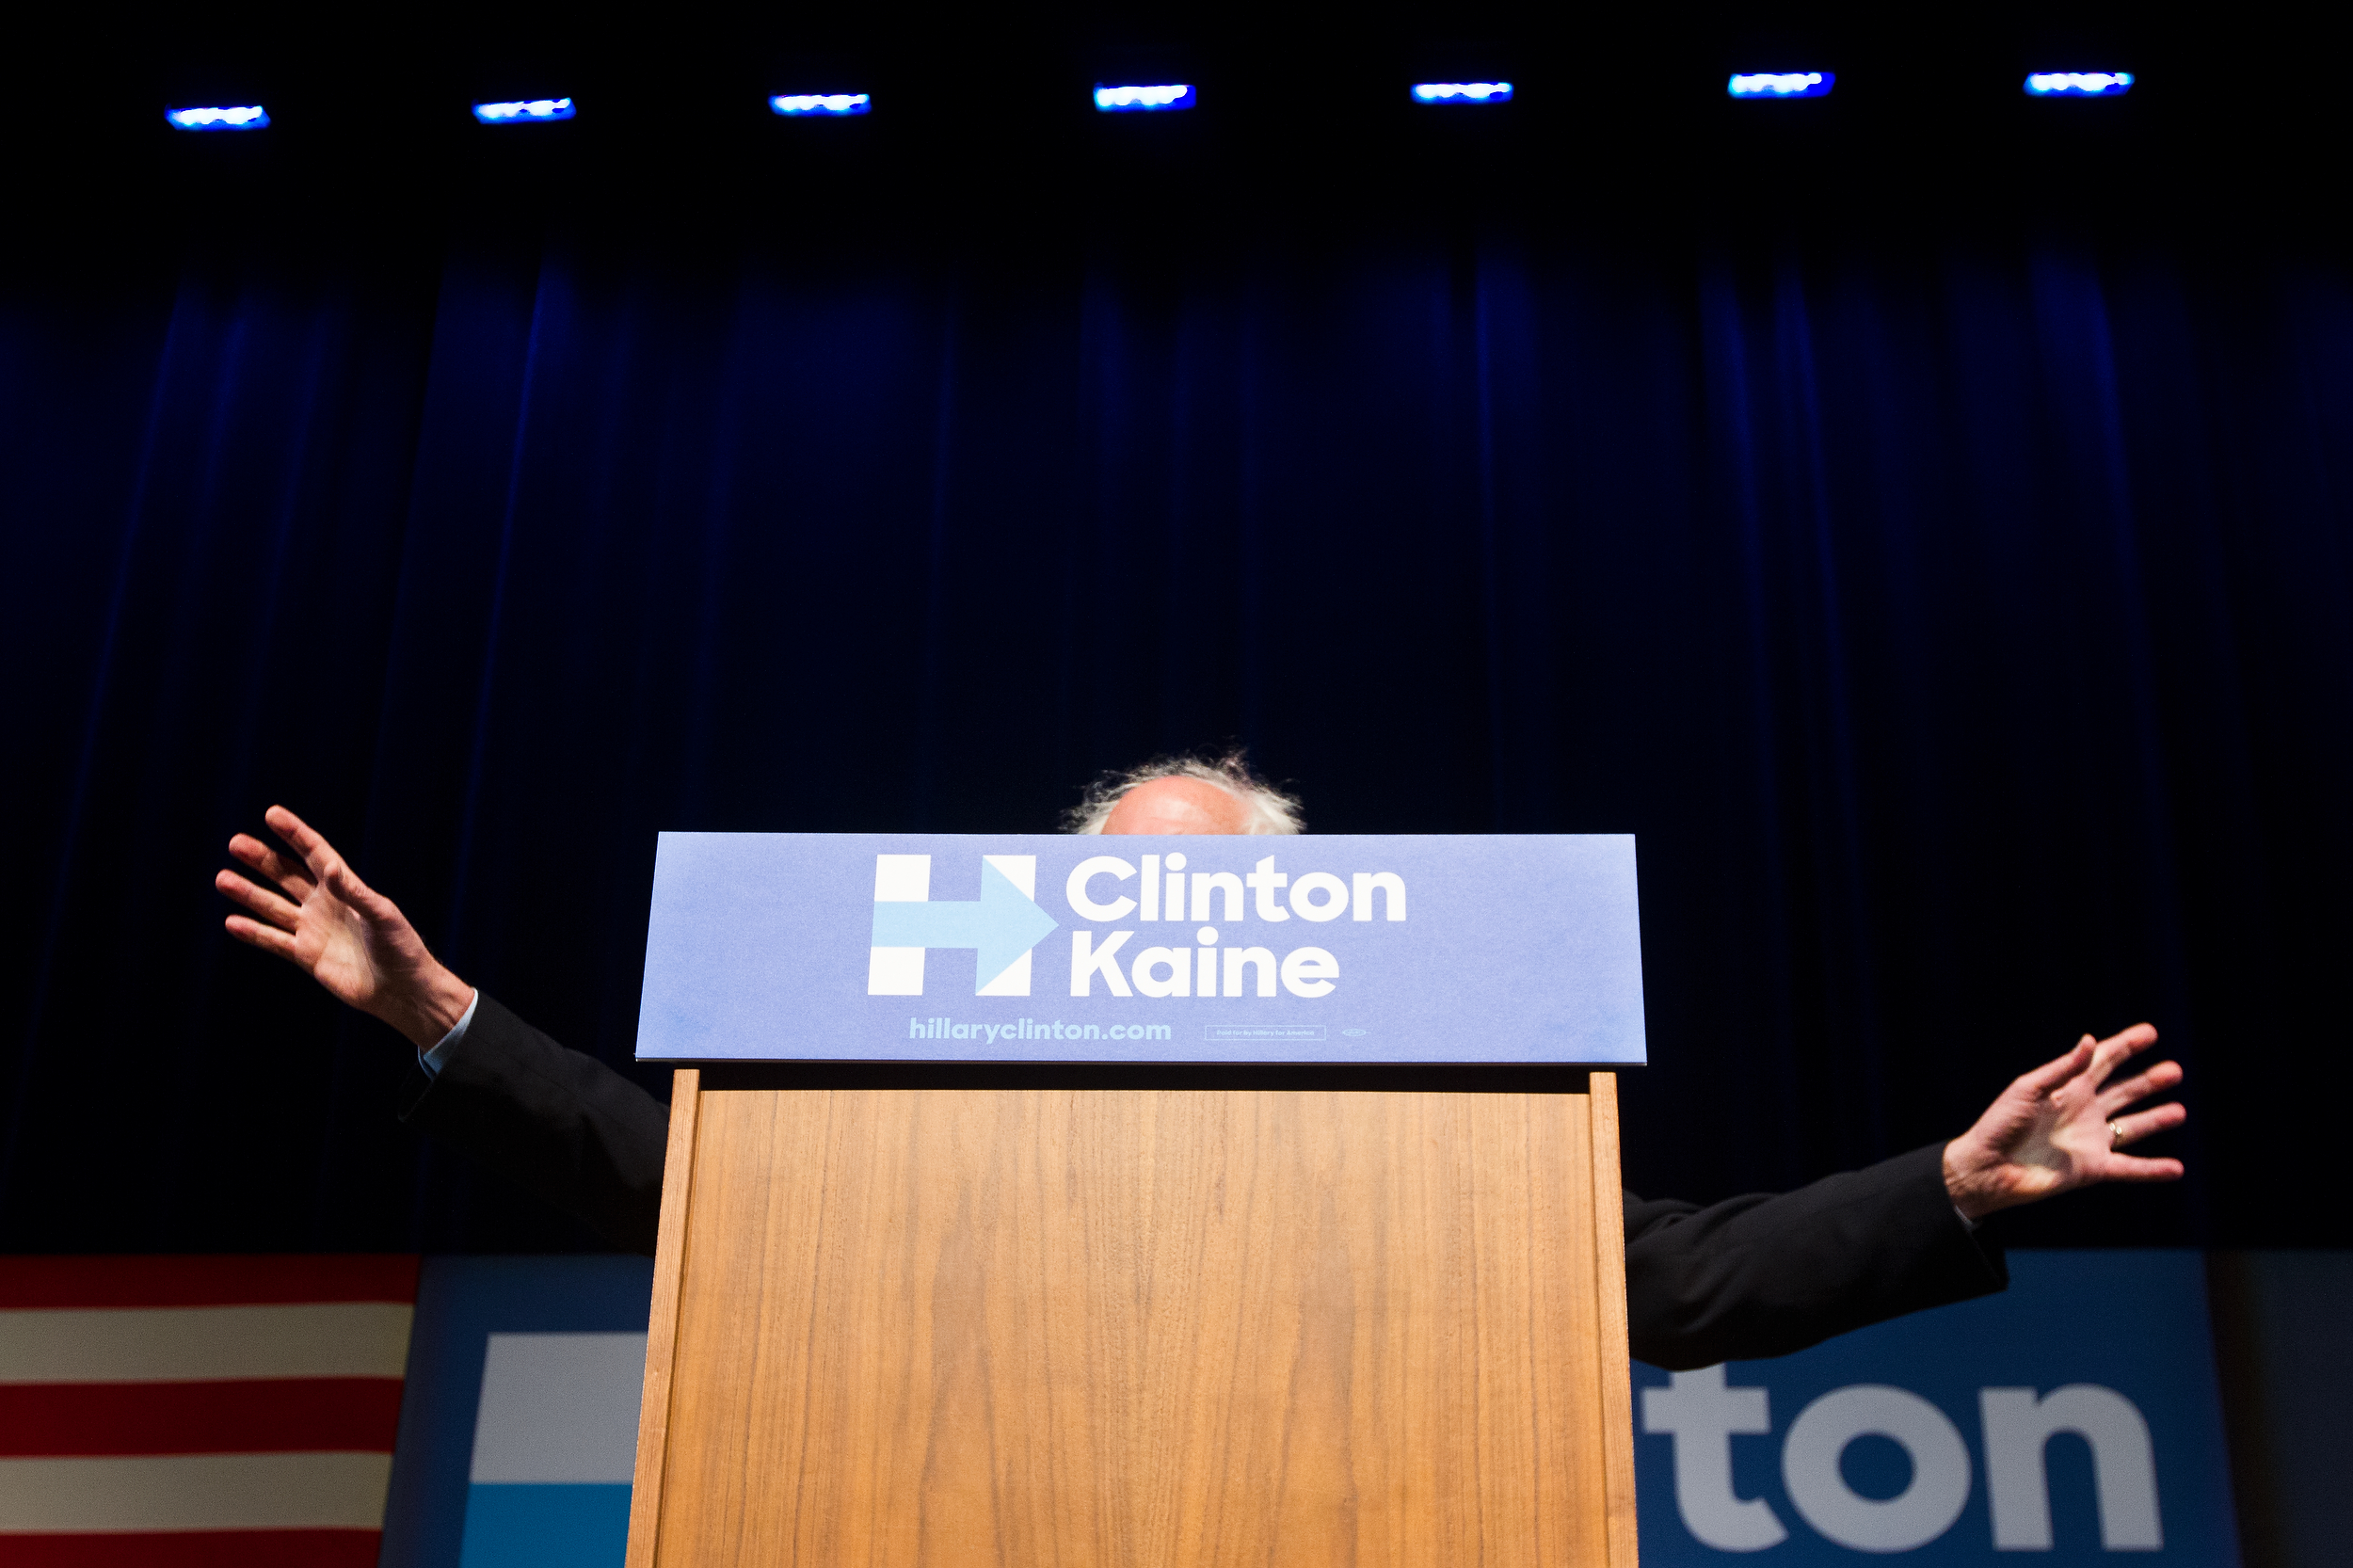 Sen. Bernie Sanders, I-Vt., speaks while campaigning for Democratic Presidential Candidate Hillary Clinton at Miller Auditorium on Western Michigan University's campus in Kalamazoo, Mich., Wednesday, Nov. 2, 2016. (Bryan Bennett | MLive.com)